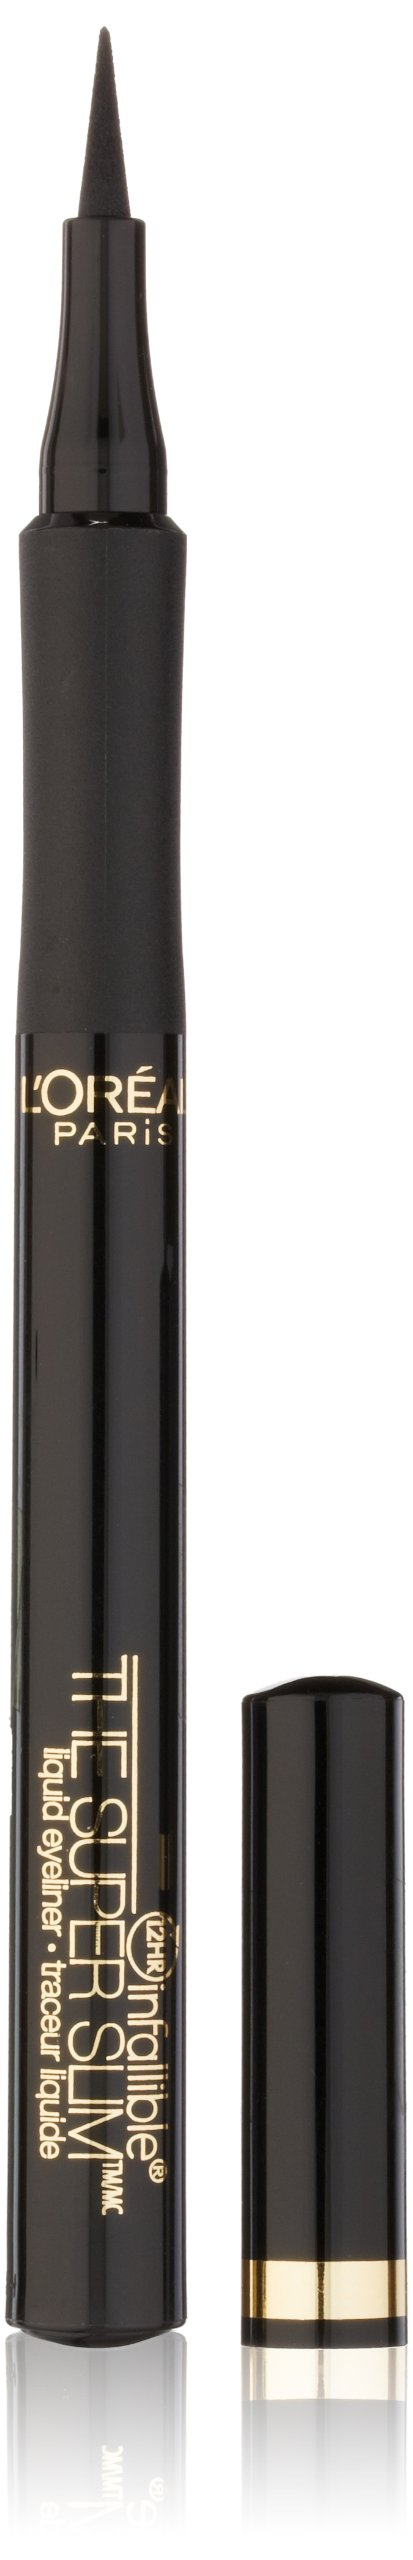 L'Oréal Paris Infallible Super Slim Liquid Eyeliner, Black, 0.034 oz.